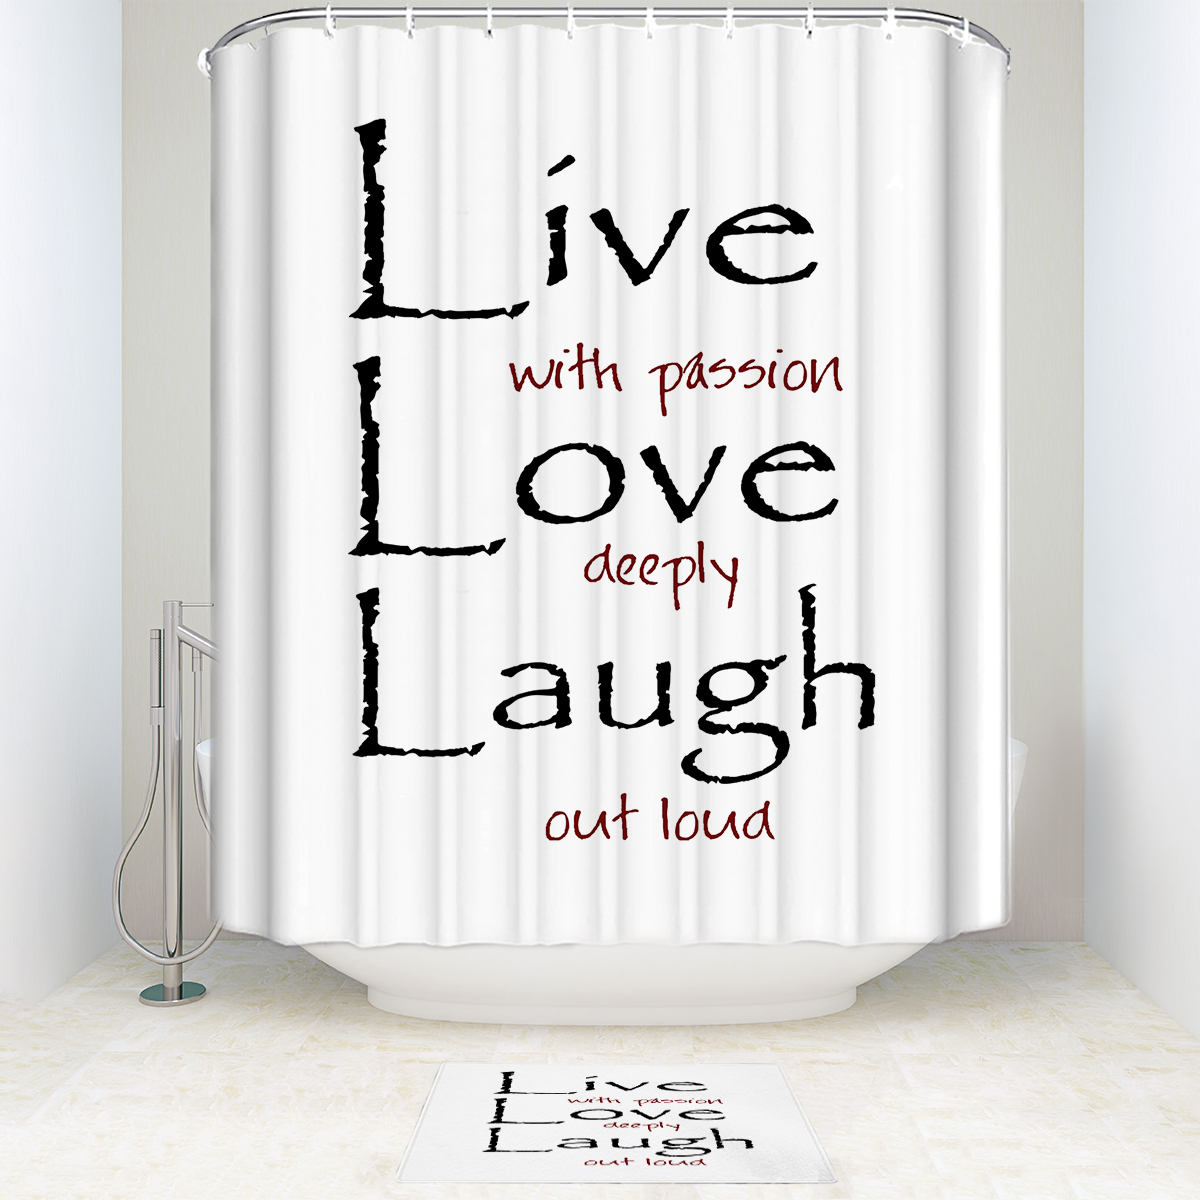 Live Love Laugh Shower Curtain And Mat Set Funny Waterproof Fabric Bathroom In Curtains From Home Garden On Aliexpress Alibaba Group